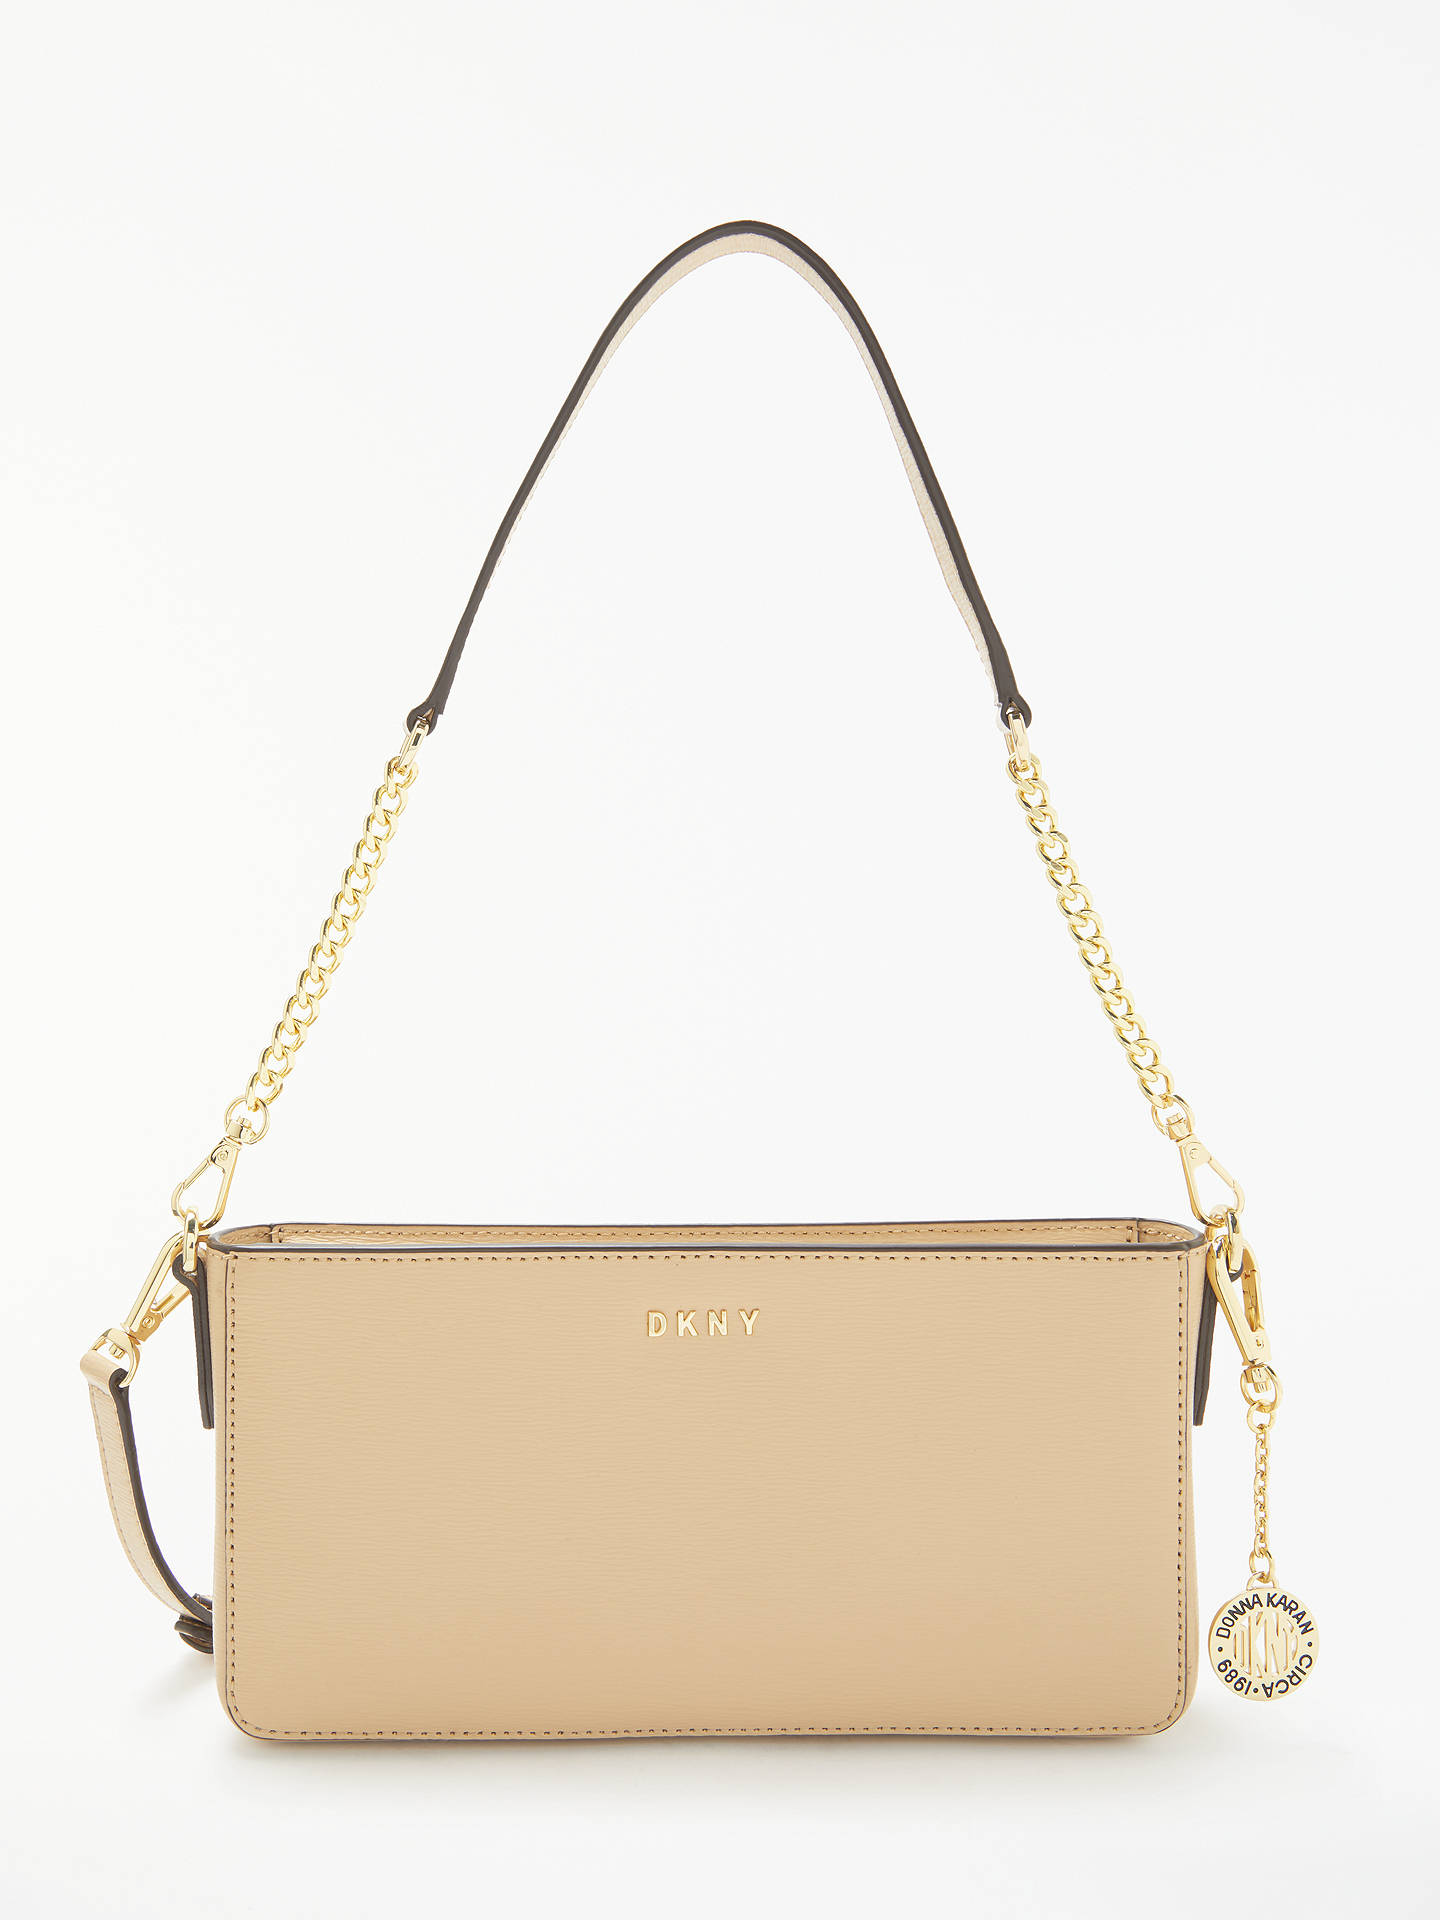 0b890270861 Buy DKNY Sutton Leather Small Cross Body Bag